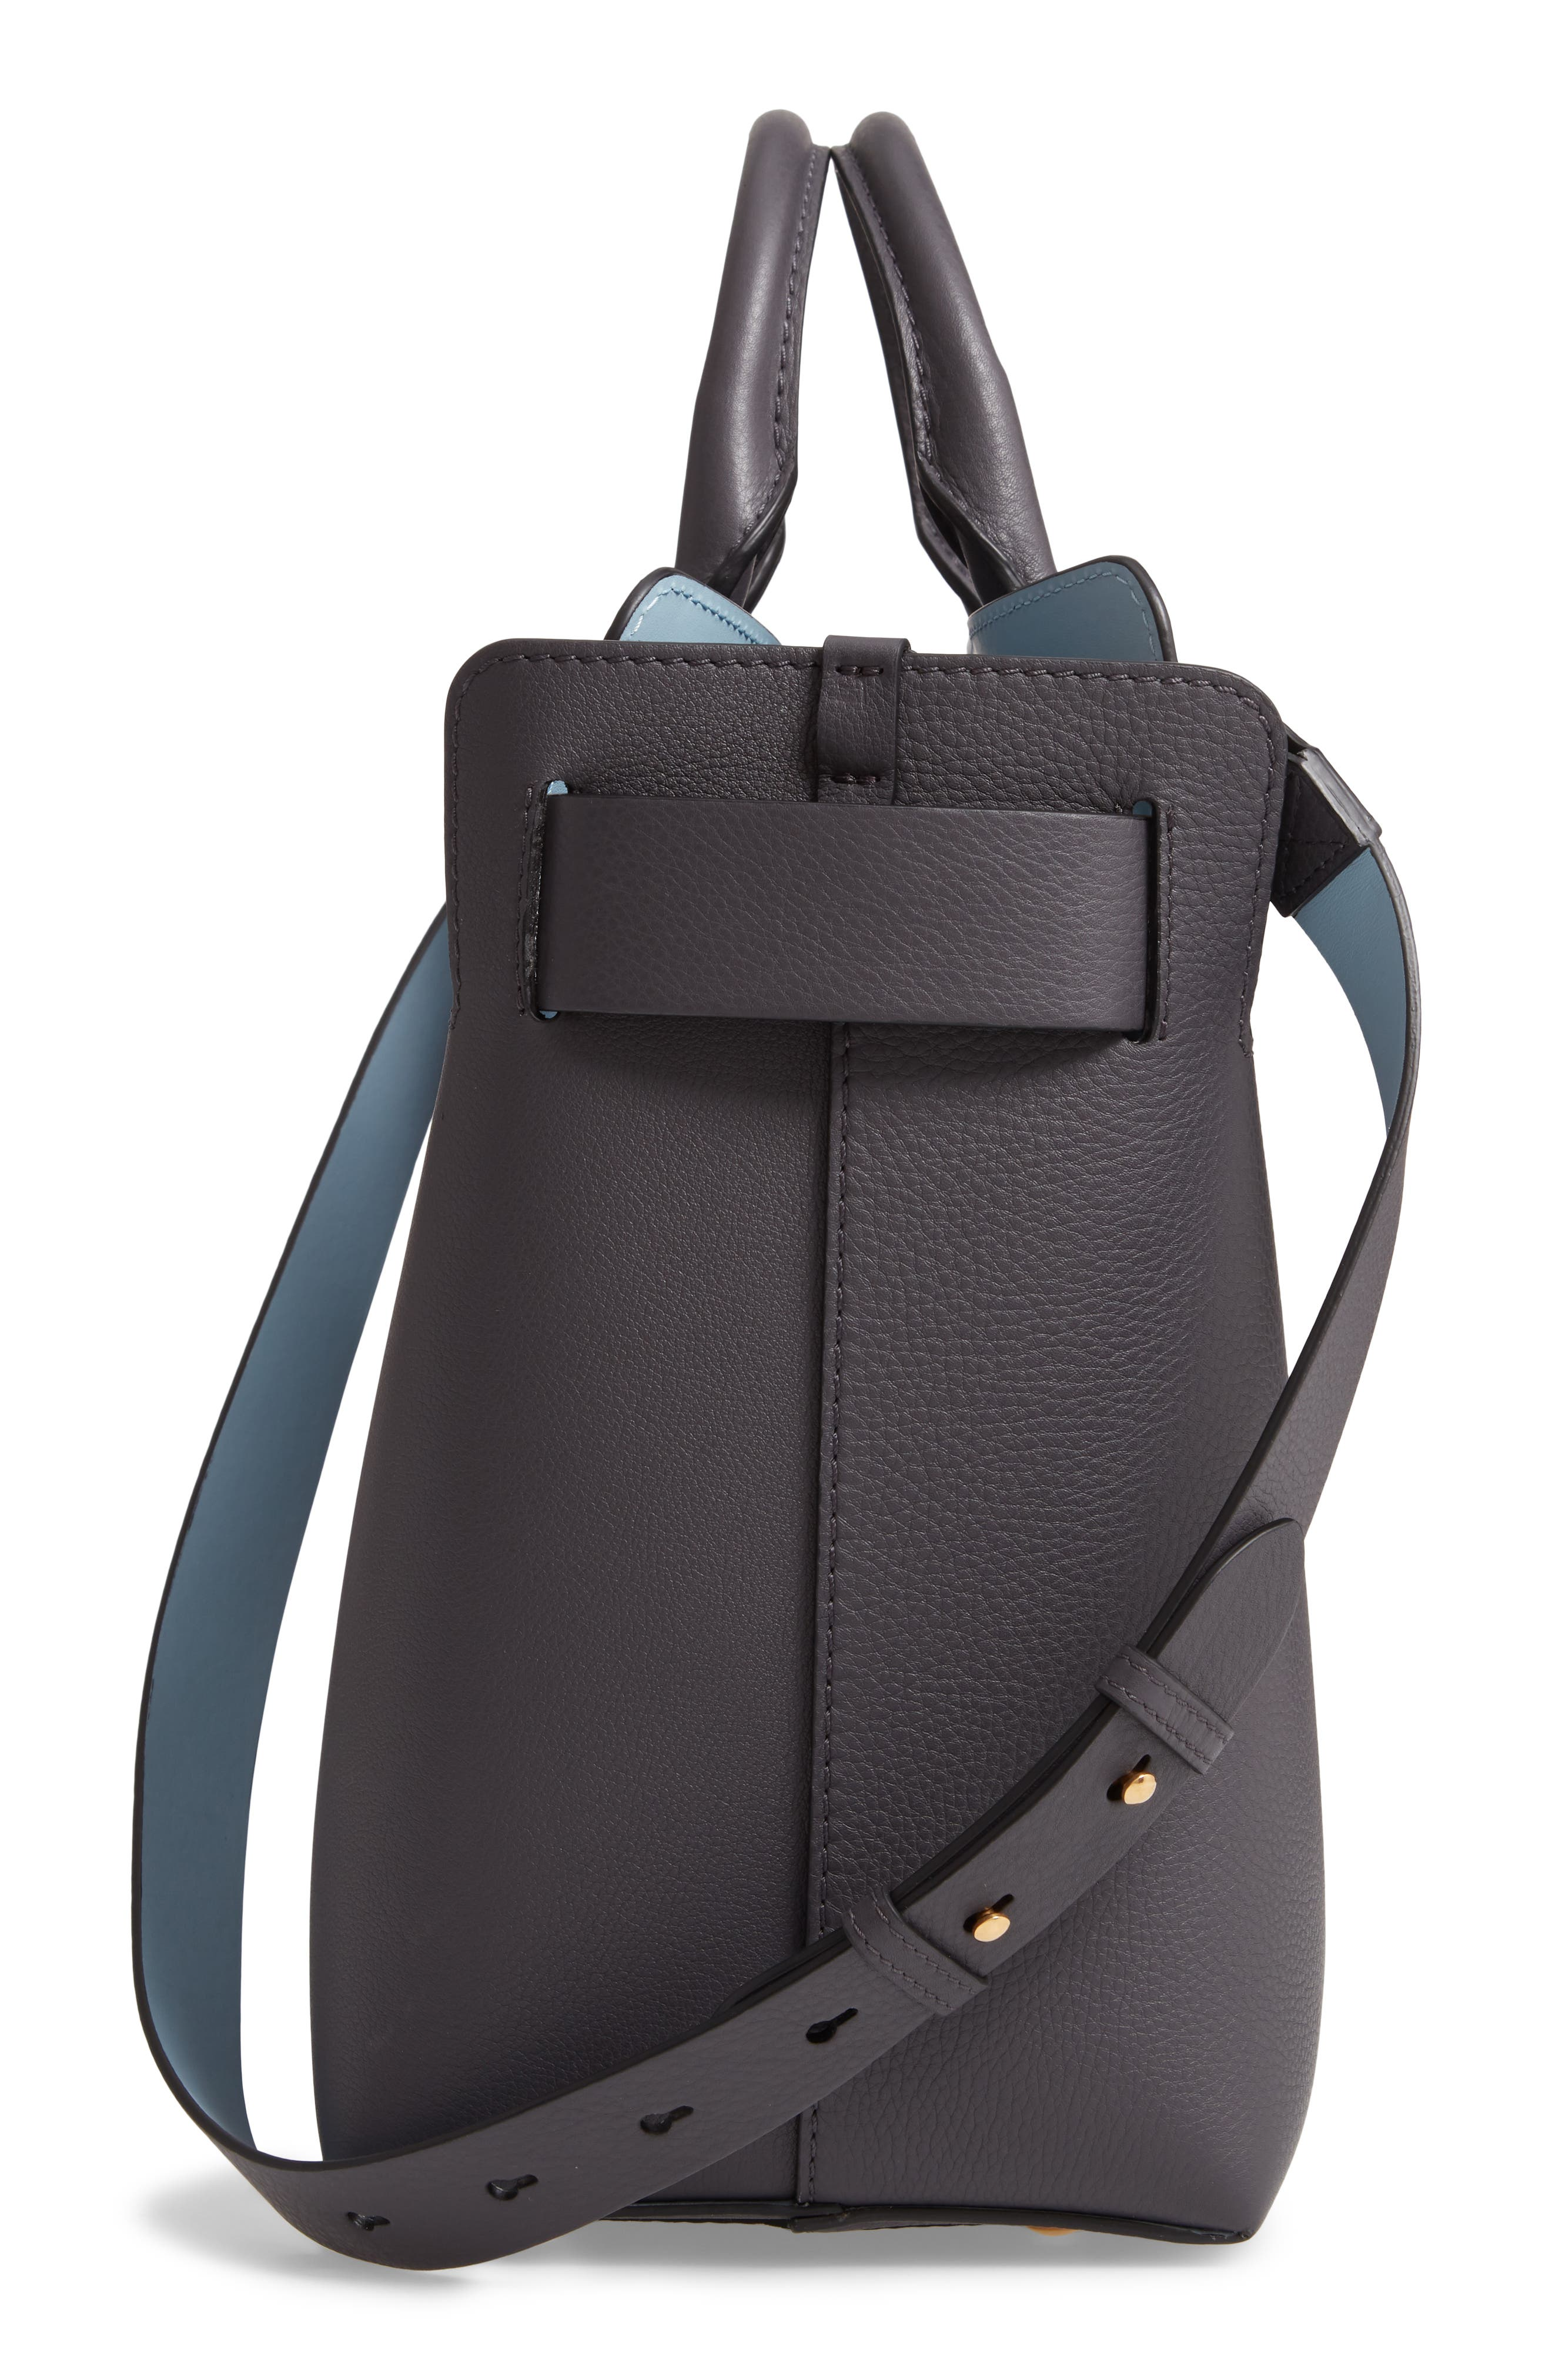 Medium Leather Belted Bag,                             Alternate thumbnail 5, color,                             CHARCOAL GREY